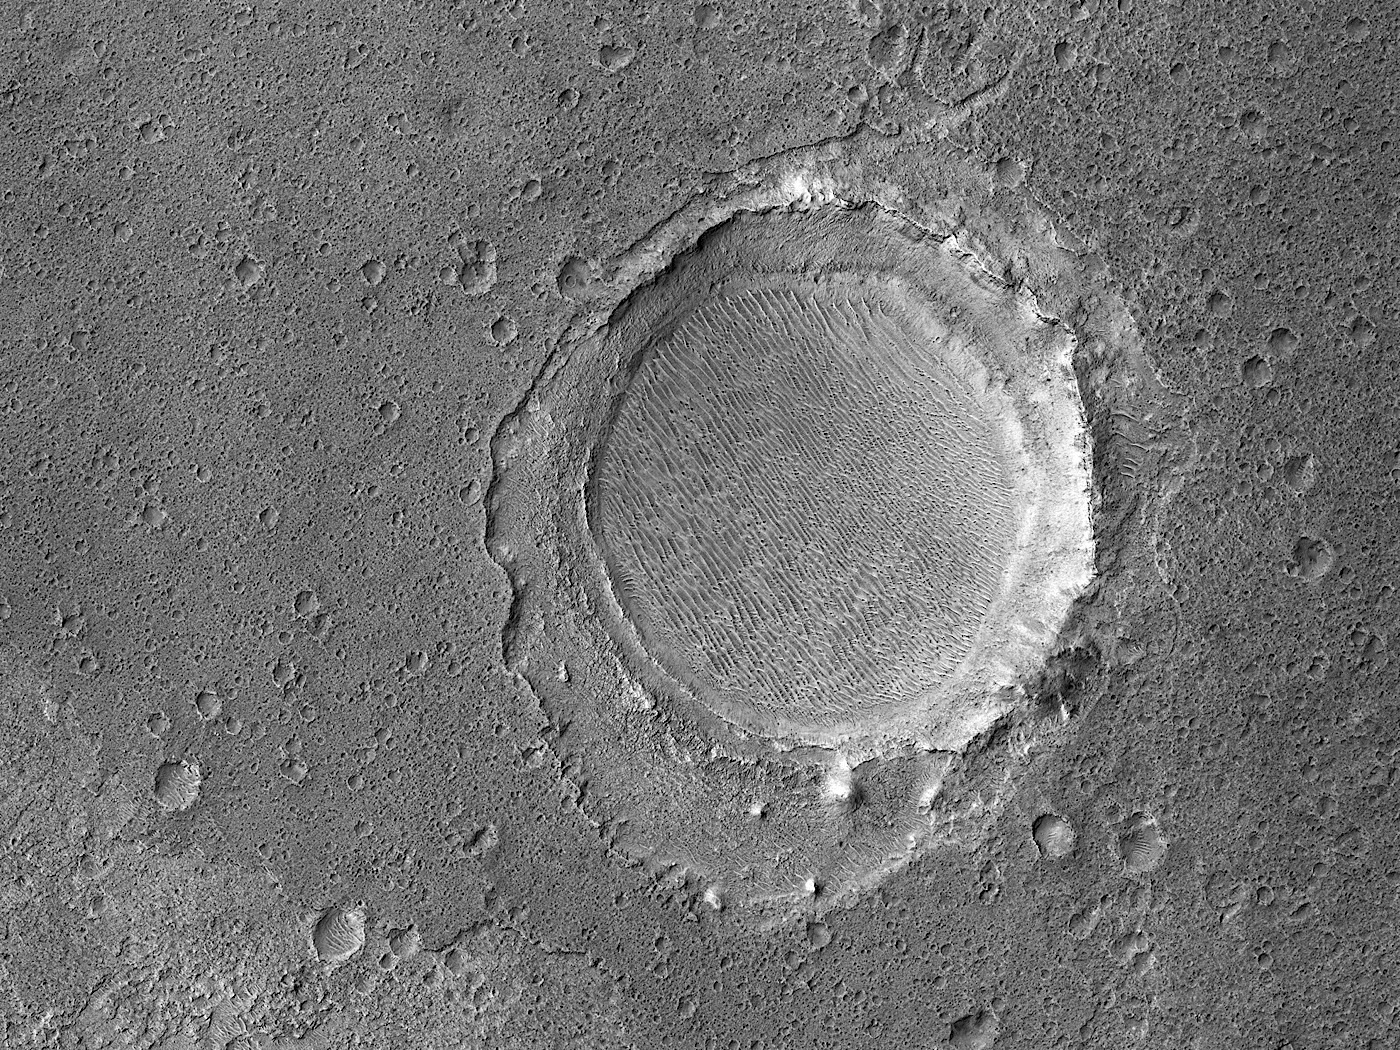 martian-impact-crater-looks-like-a-huge-gladiator-arena-shot-from-a-drone